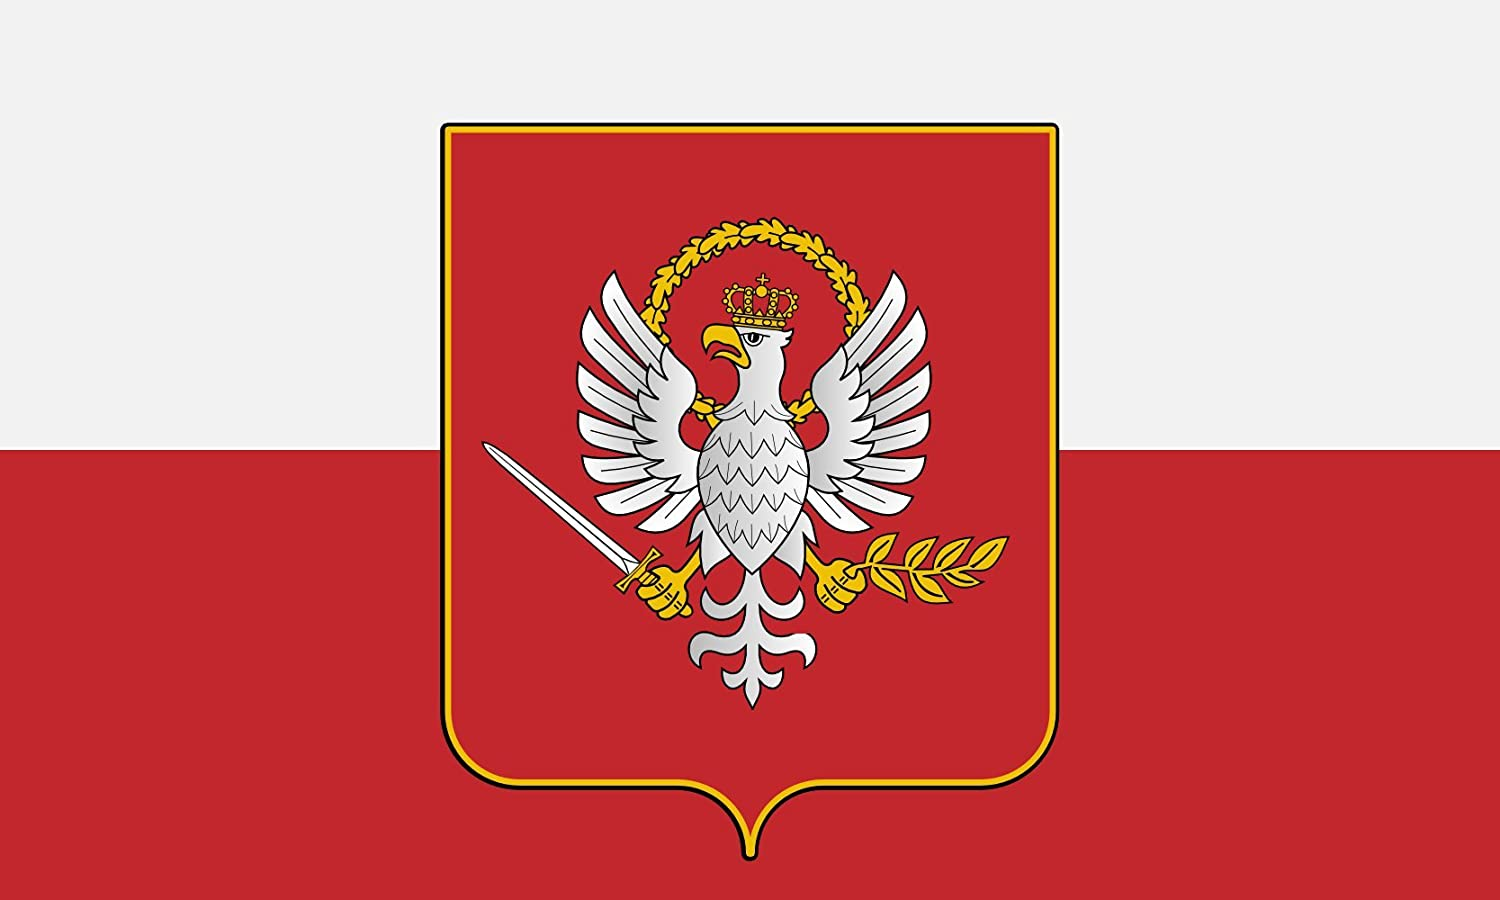 Amazon.com : magFlags Large Flag Poland ALT | Alt Flag of Poland by Ziegen  | Landscape Flag | 1.35m² | 14.5sqft | 90x150cm | 3x5ft - 100% Made in  Germany - Long Lasting Outdoor Flag : Garden & Outdoor